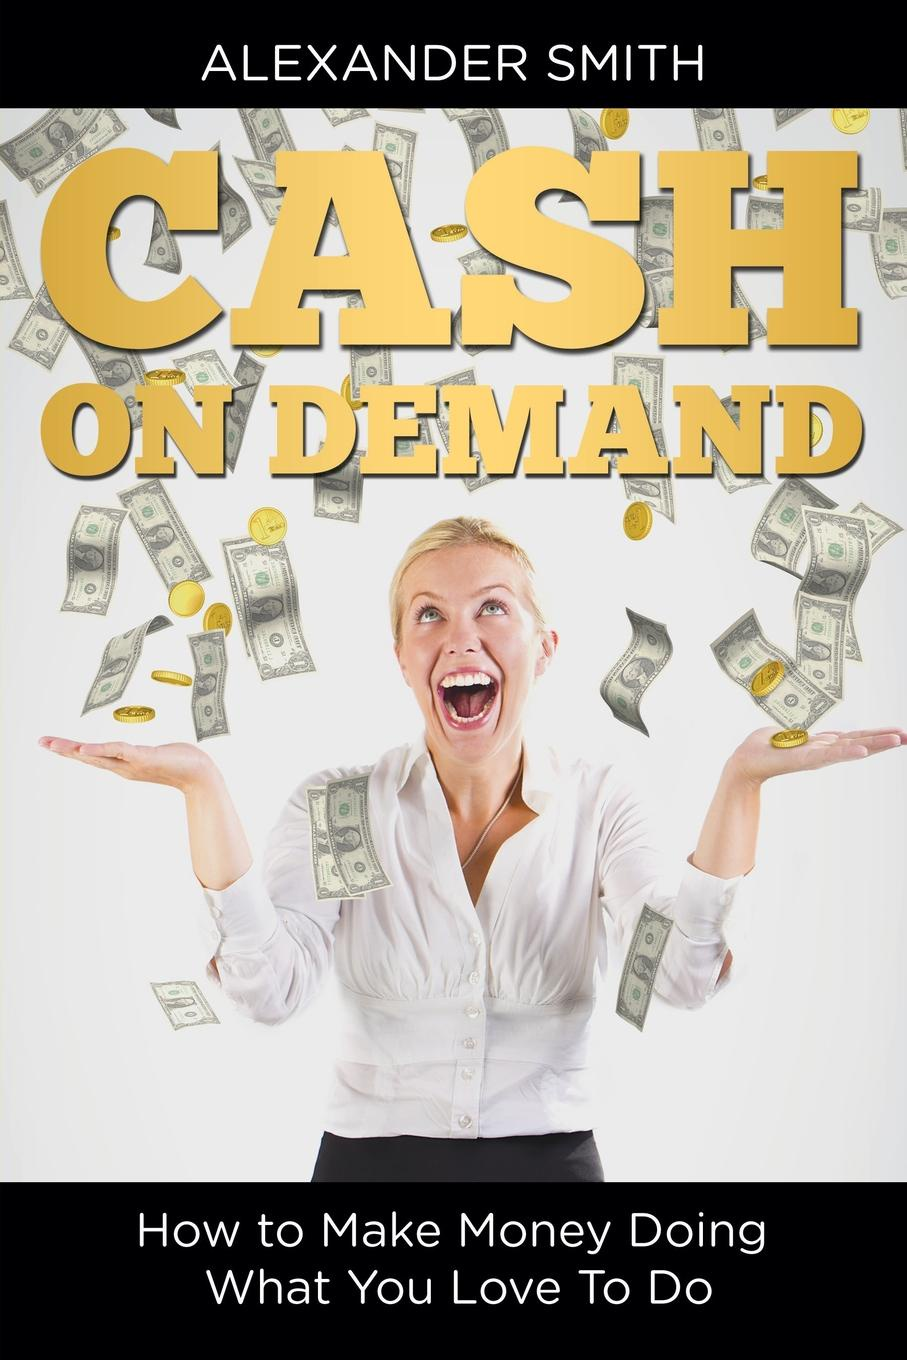 Alexander Smith Cash on Demand. How to Make Money Doing What You Love To Do nilofer safdar money circle what choice are you willing to make today to create a different future right away